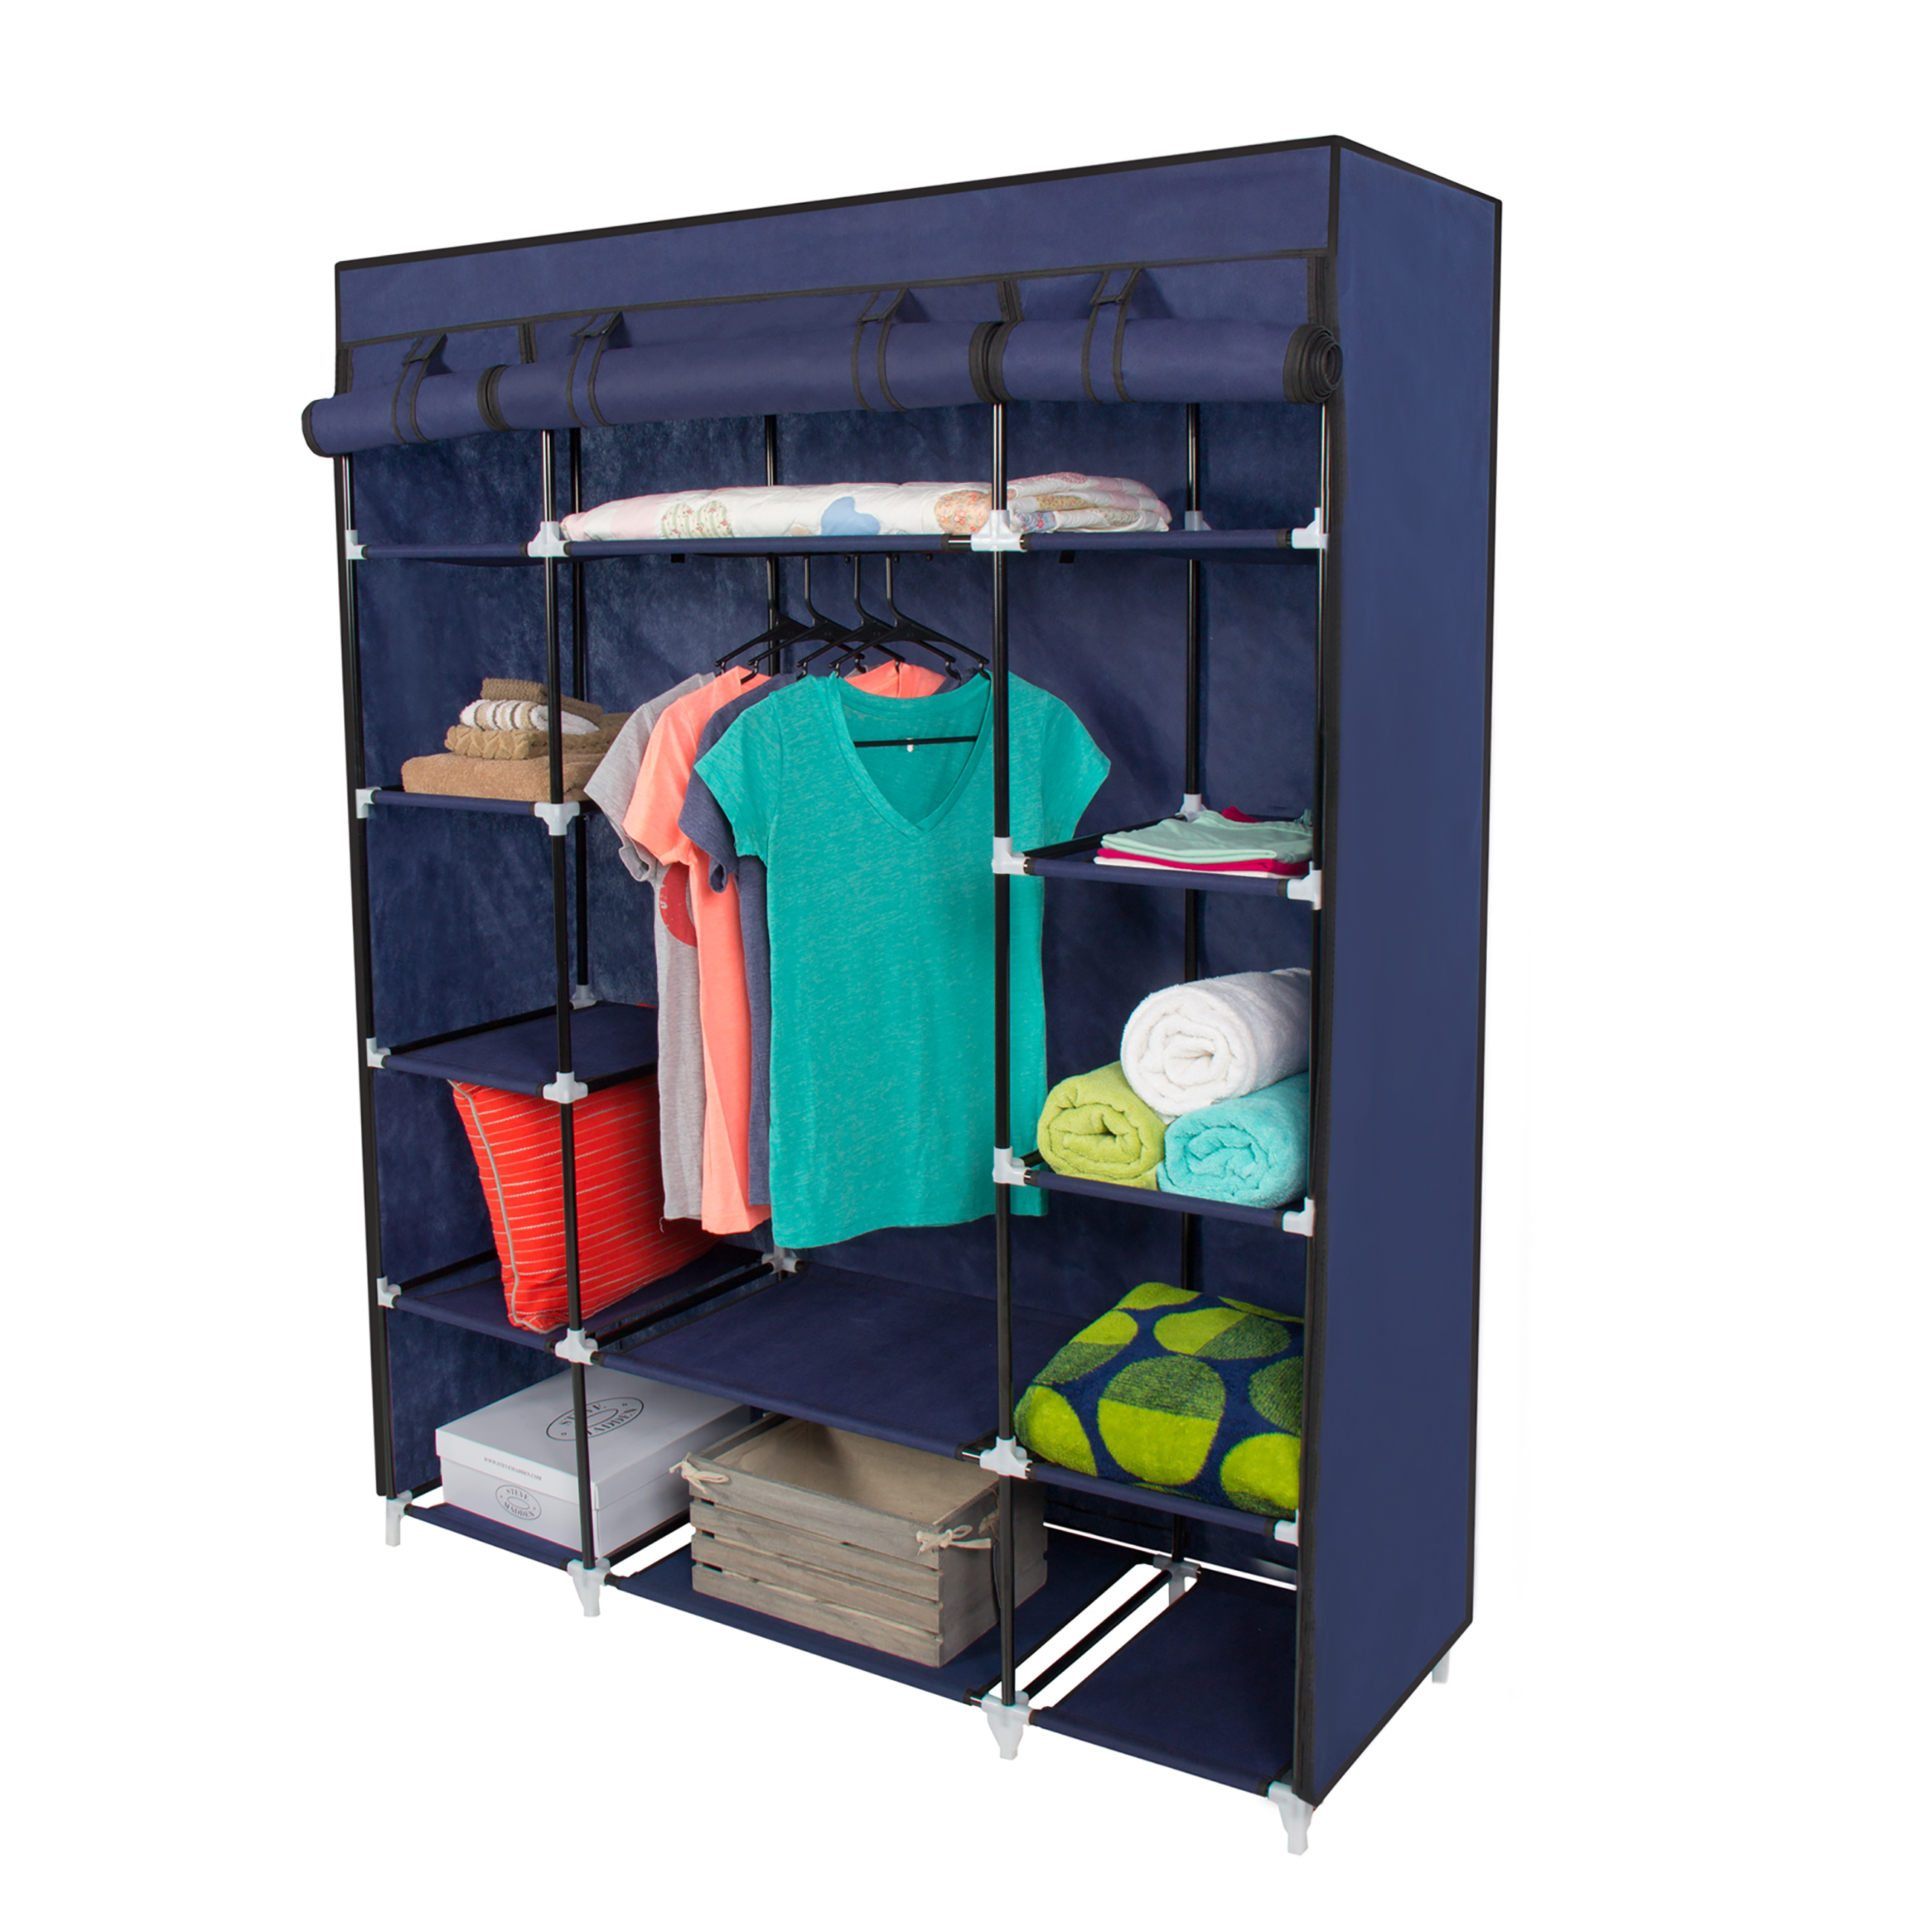 53u201d portable closet storage organizer wardrobe clothes rack with shelves  blue AAKXSRU